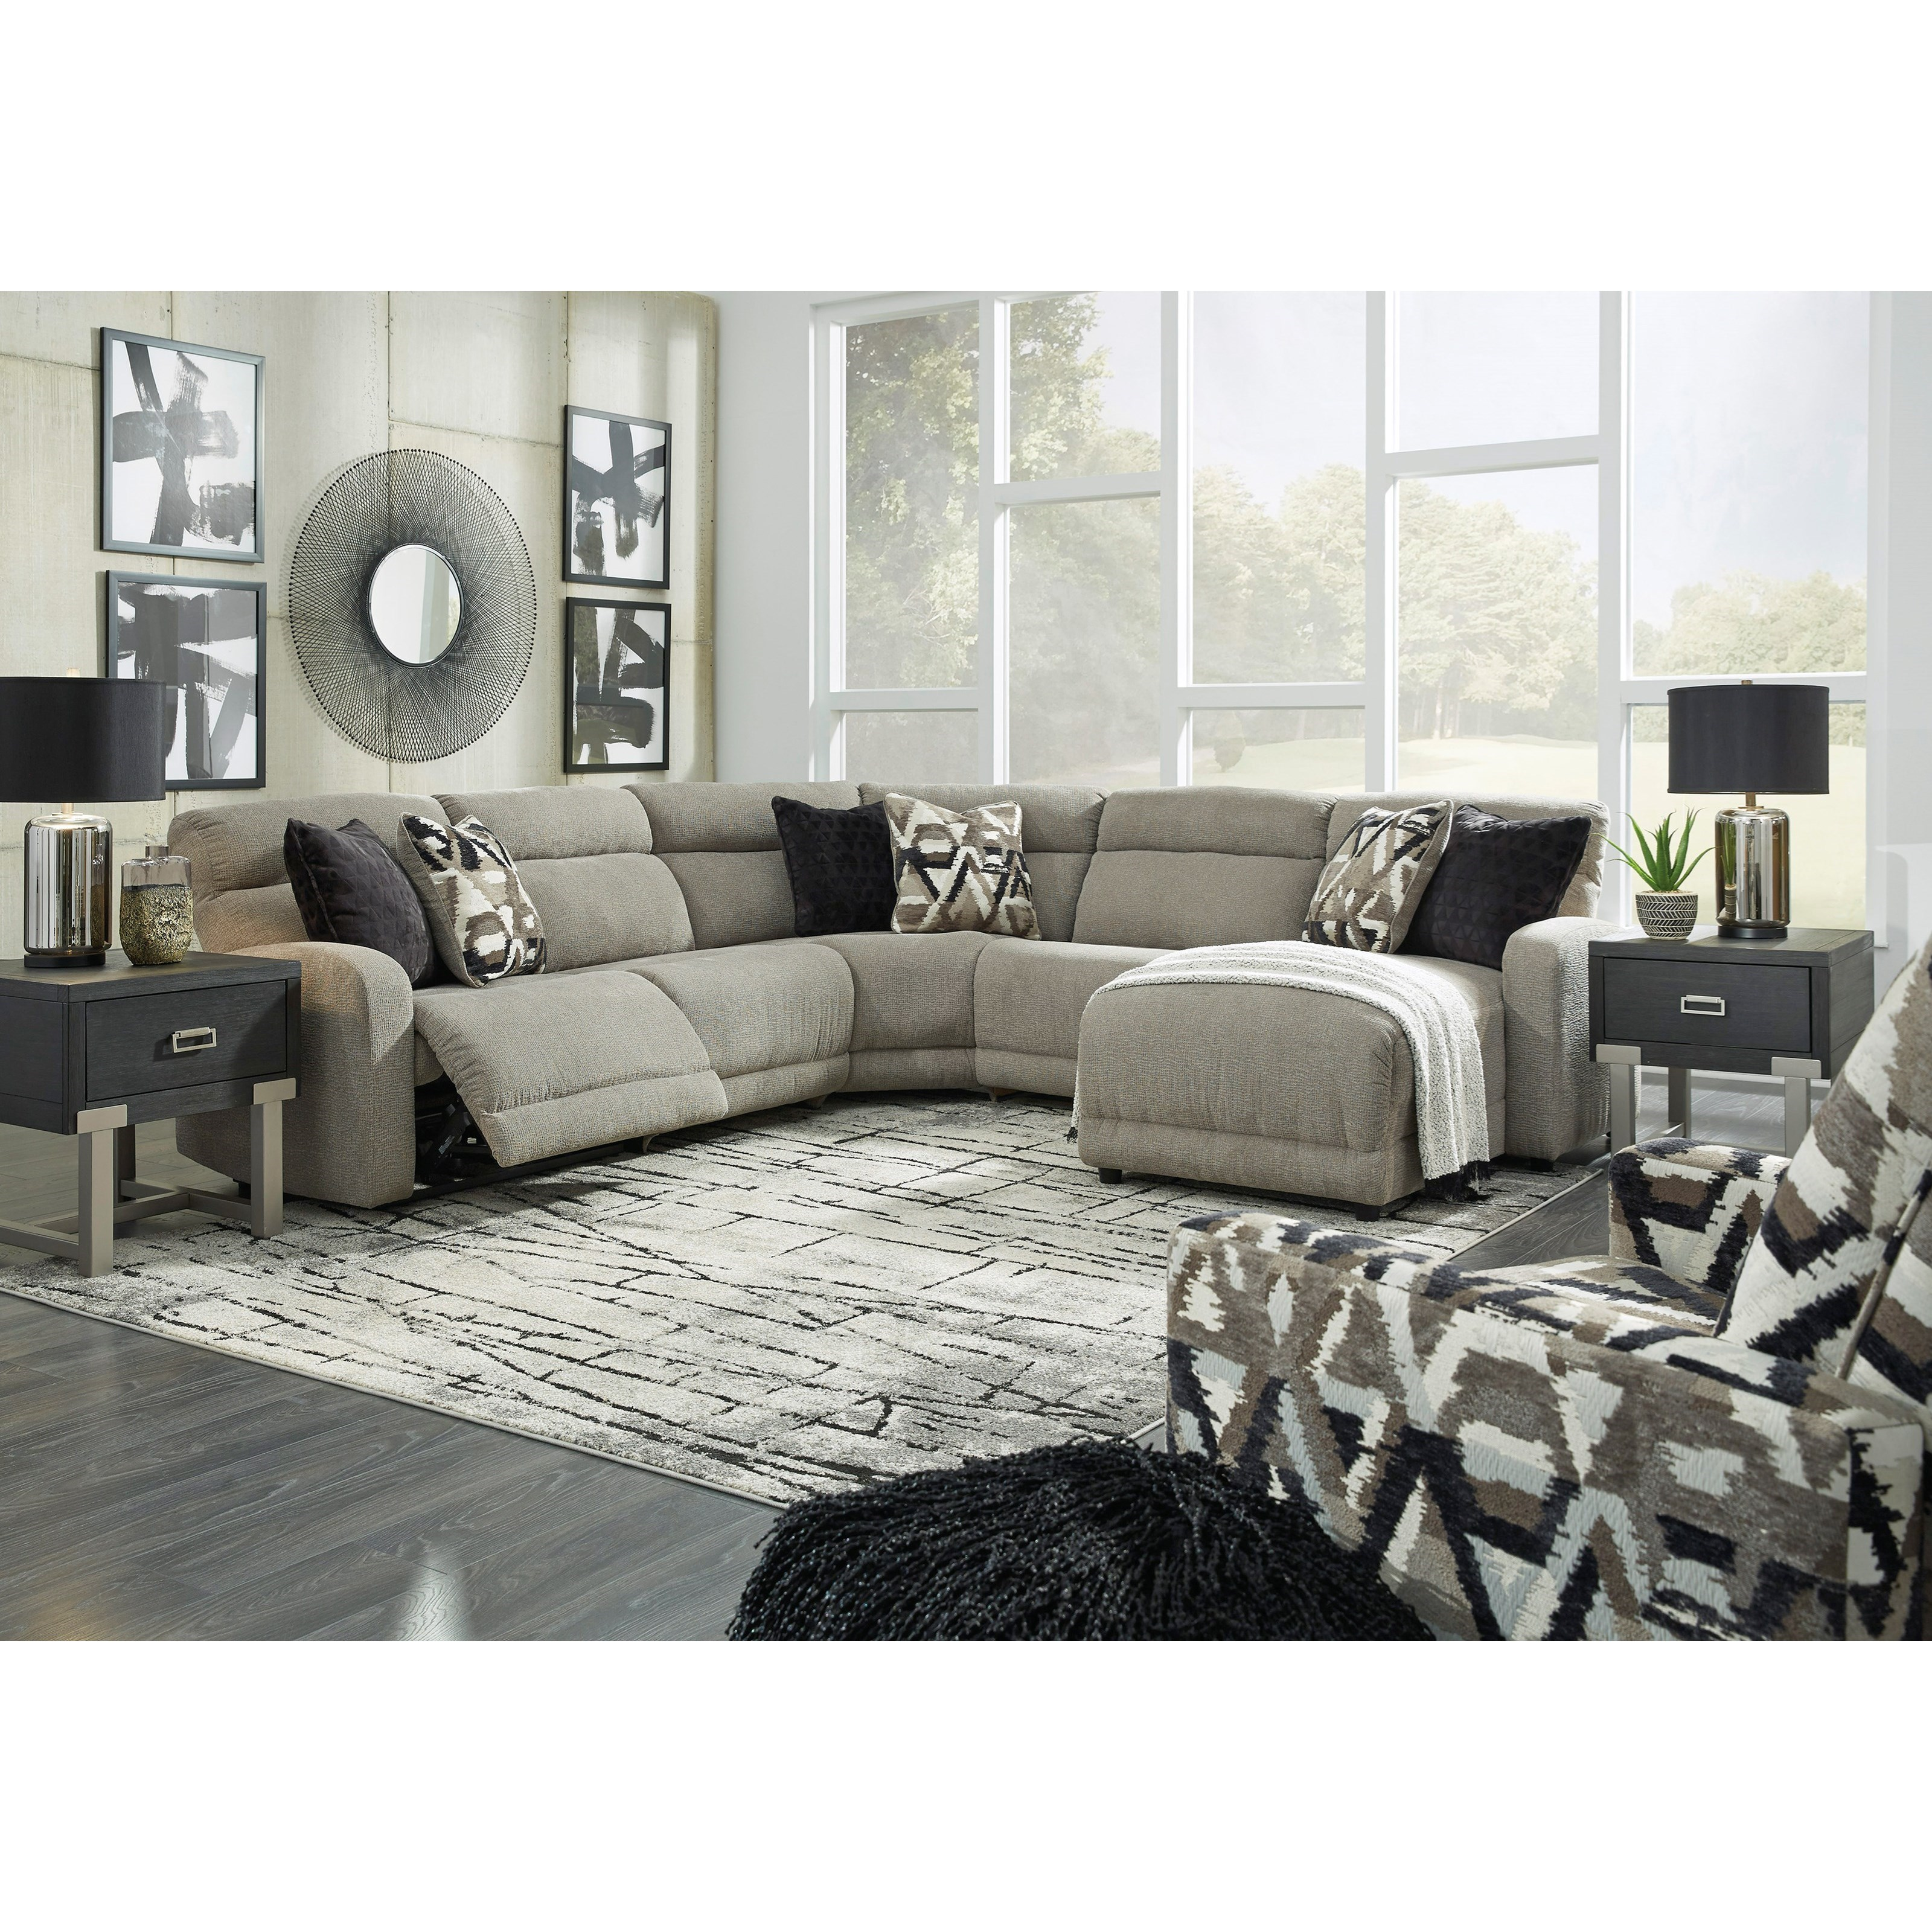 Colleyville Power Reclining Living Room Group by Signature Design by Ashley at Northeast Factory Direct